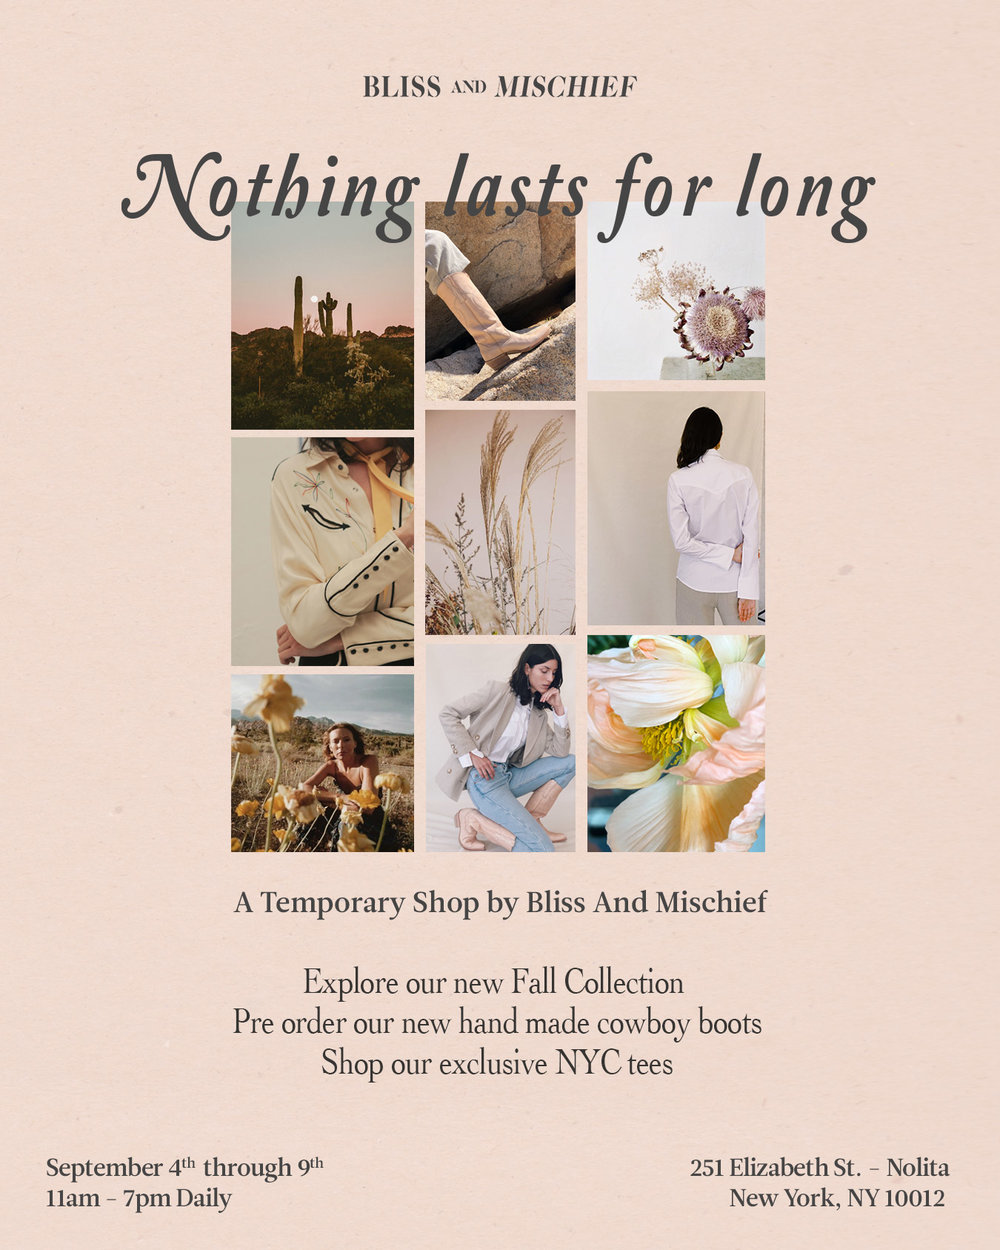 Bliss And Mischief-Nothing Lasts for Long - Our 1st New York Retail Shop